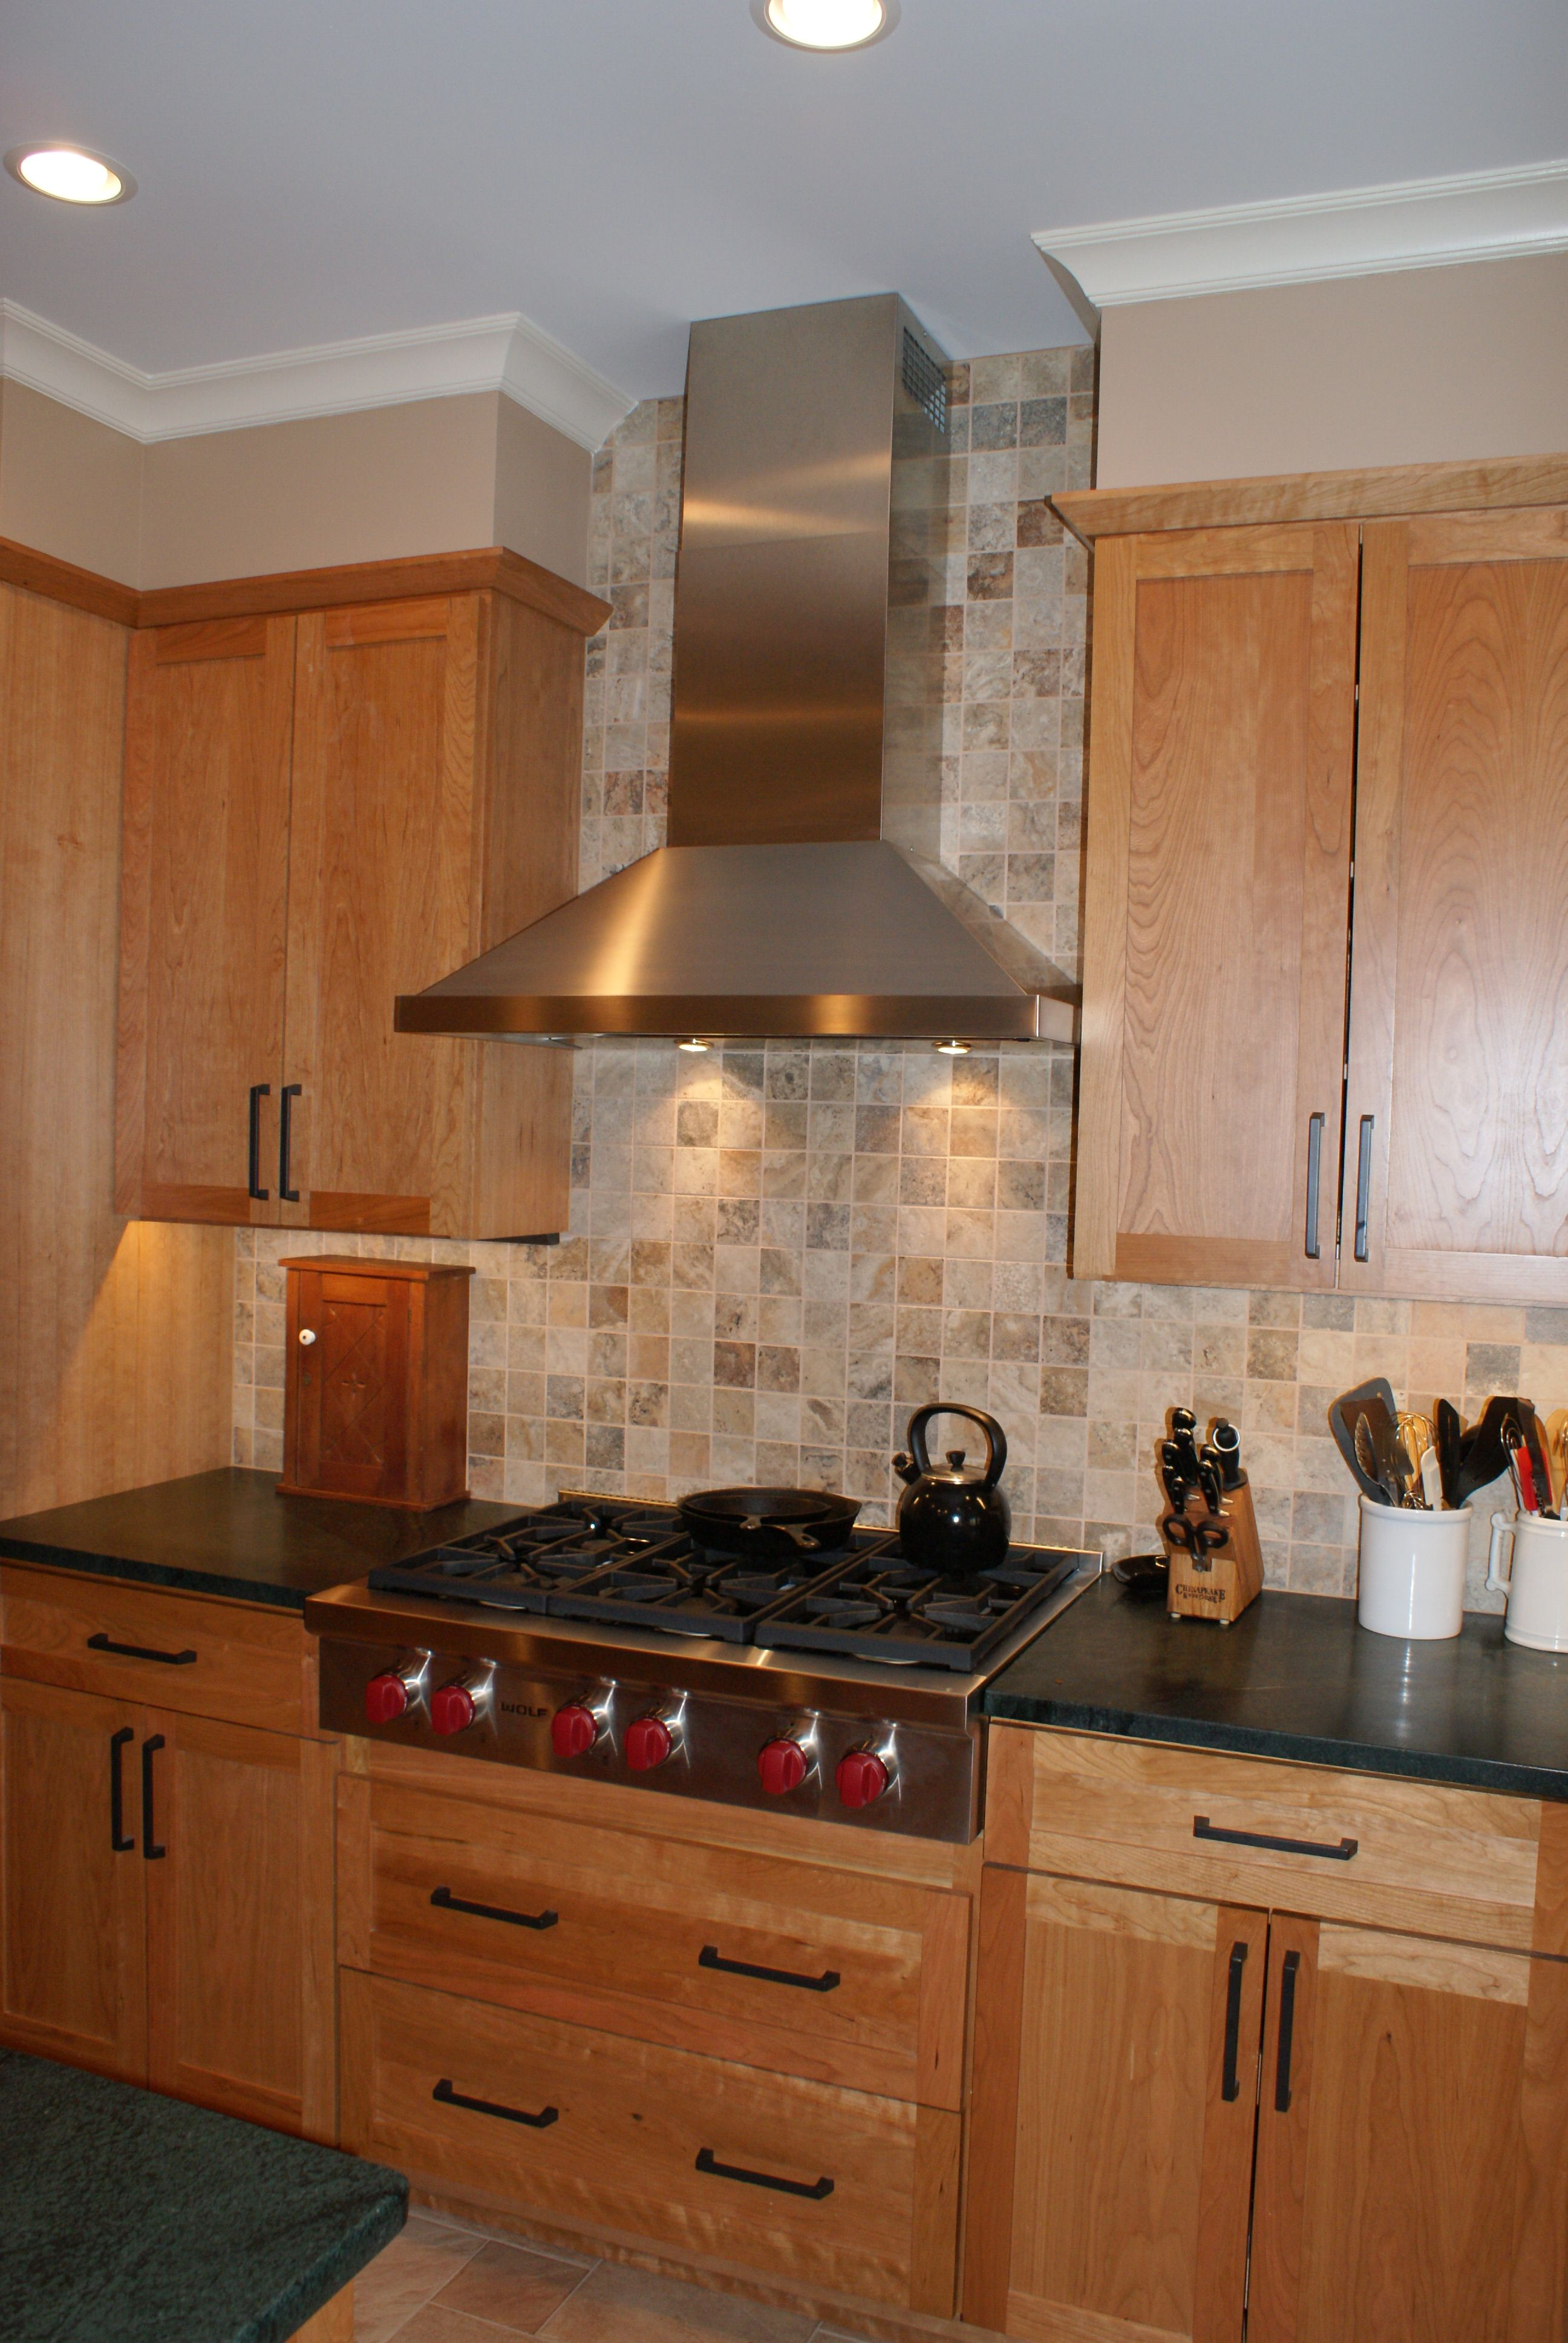 Kitchen Cabinets To Ceiling With Glass Backsplash Tile To Ceiling Behind Range Hood Kitchens In